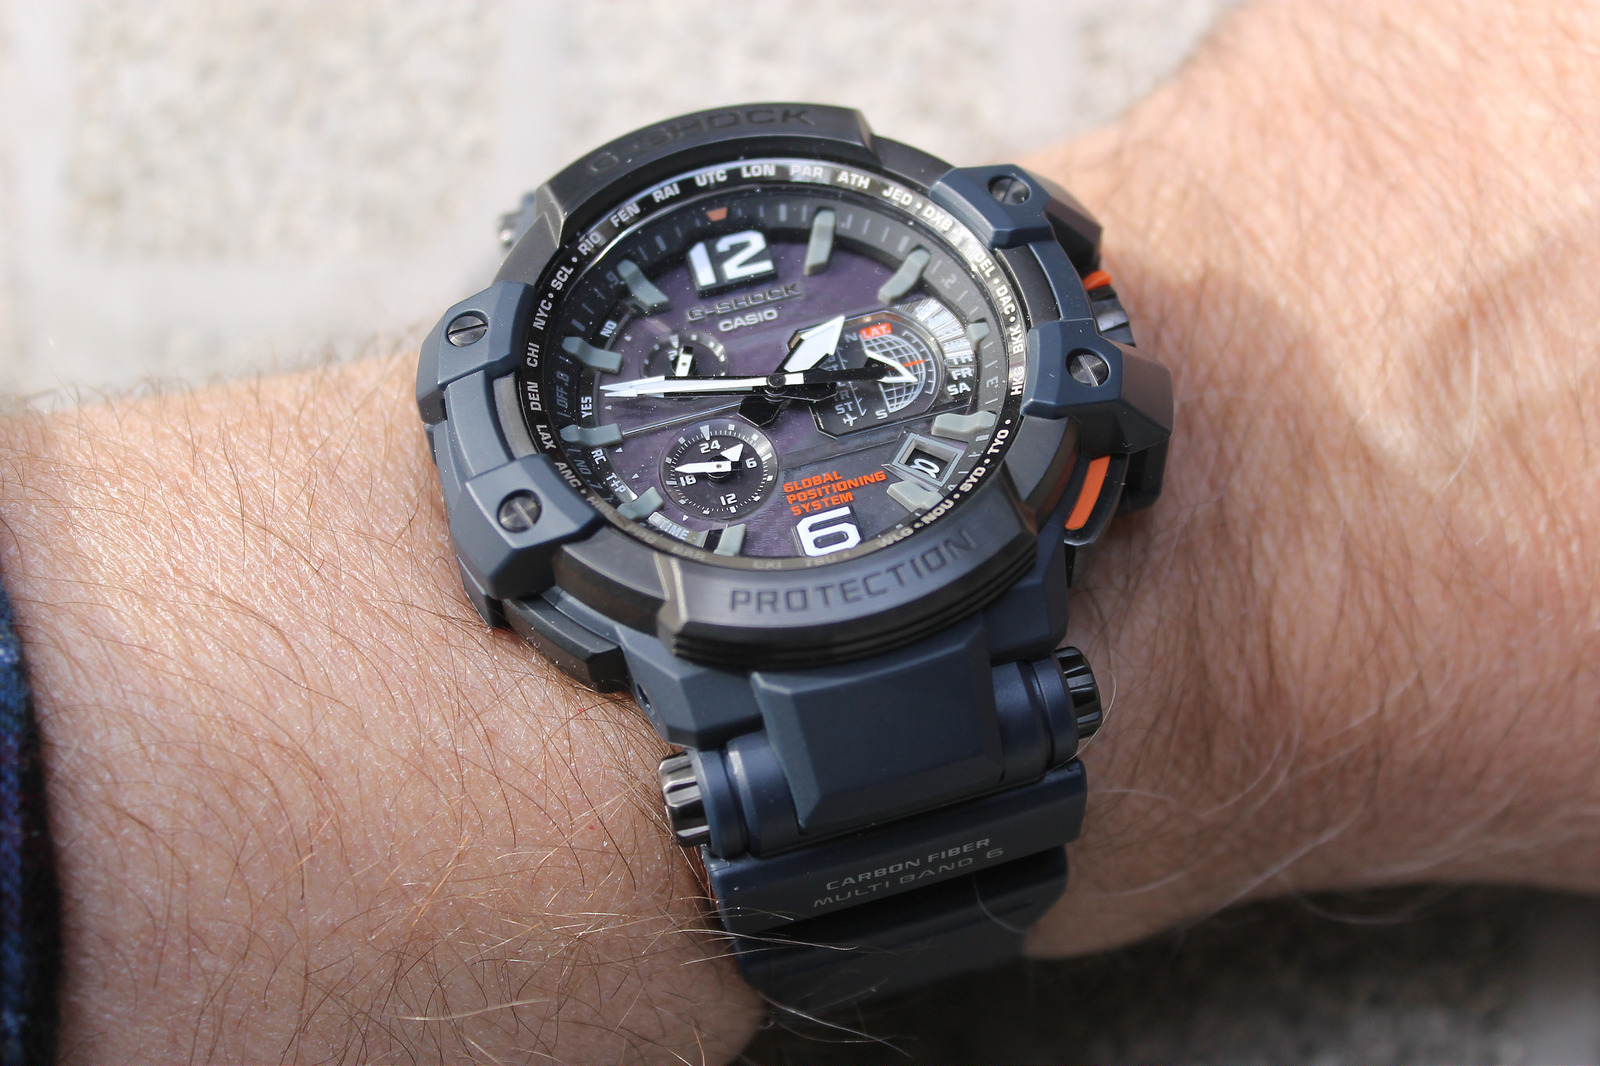 Rok 2014, Casio G-Shock GPW-1000